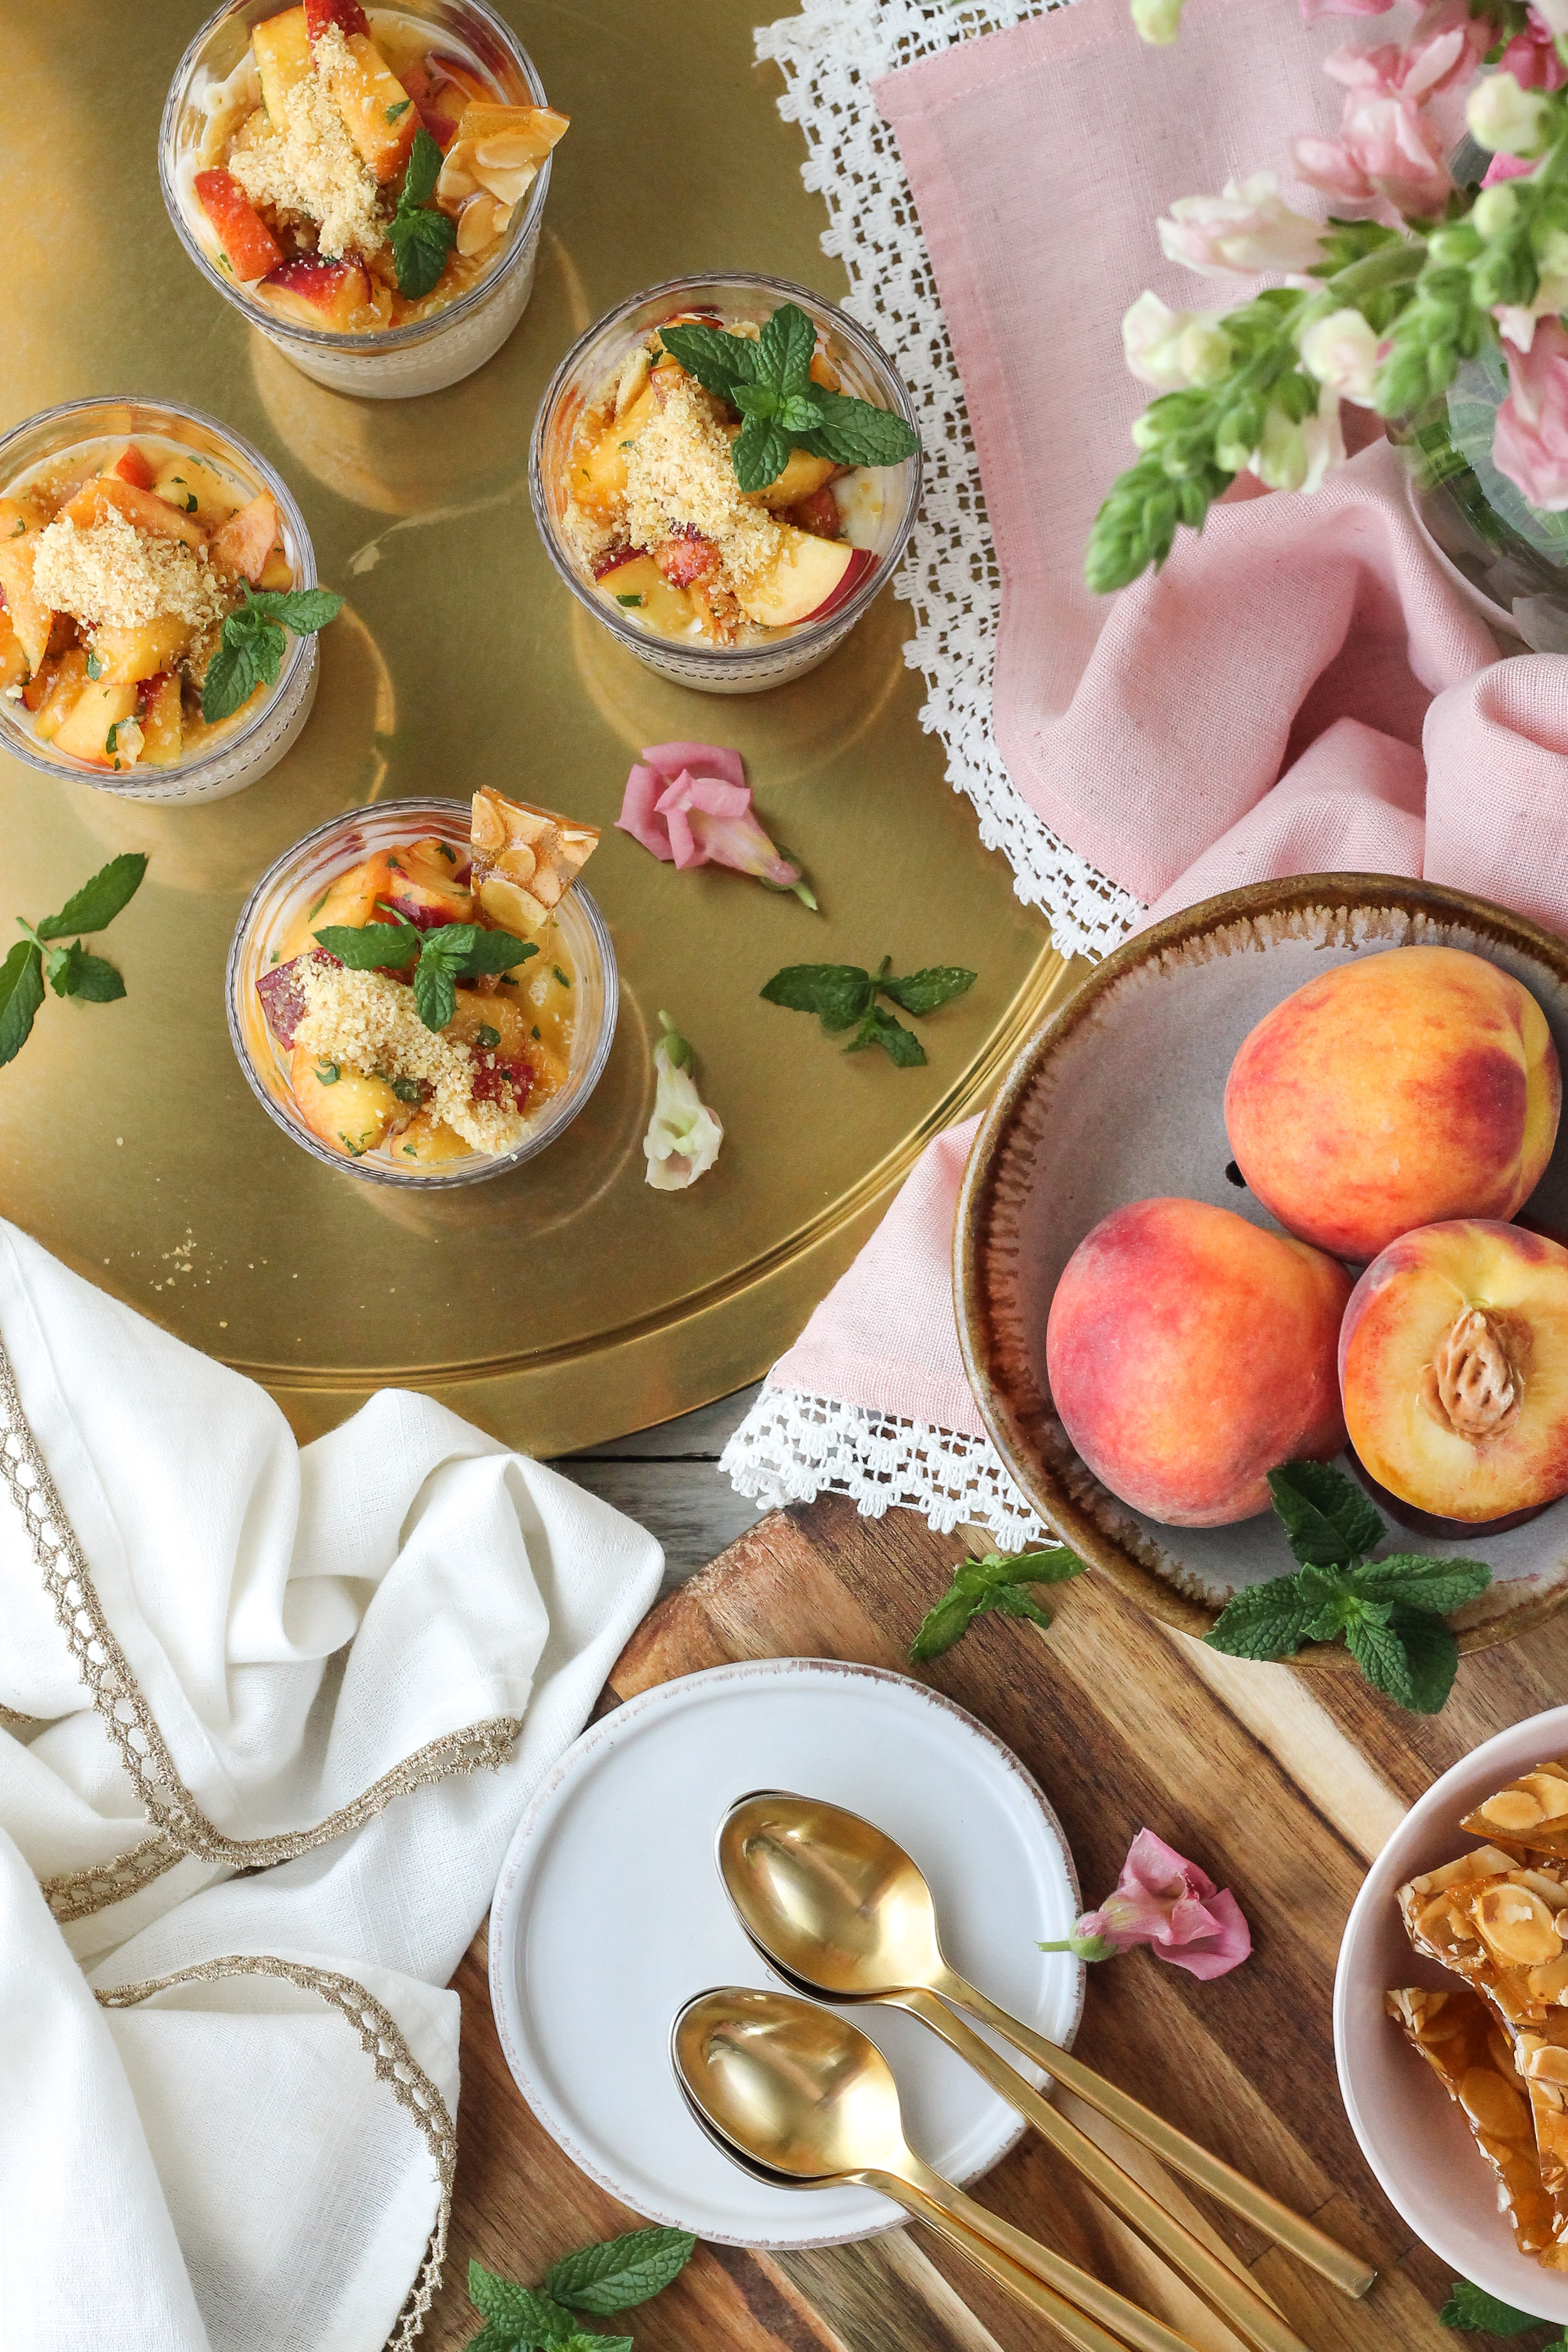 These Lemon Curd Yogurt Peach Parfaits with Almond Brittle 'Sprinkles' are one of the easiest, healthy summer desserts and they comes together in minutes!  Find the super simple recipe on WWW.PEDANTICFOODIE.COM!